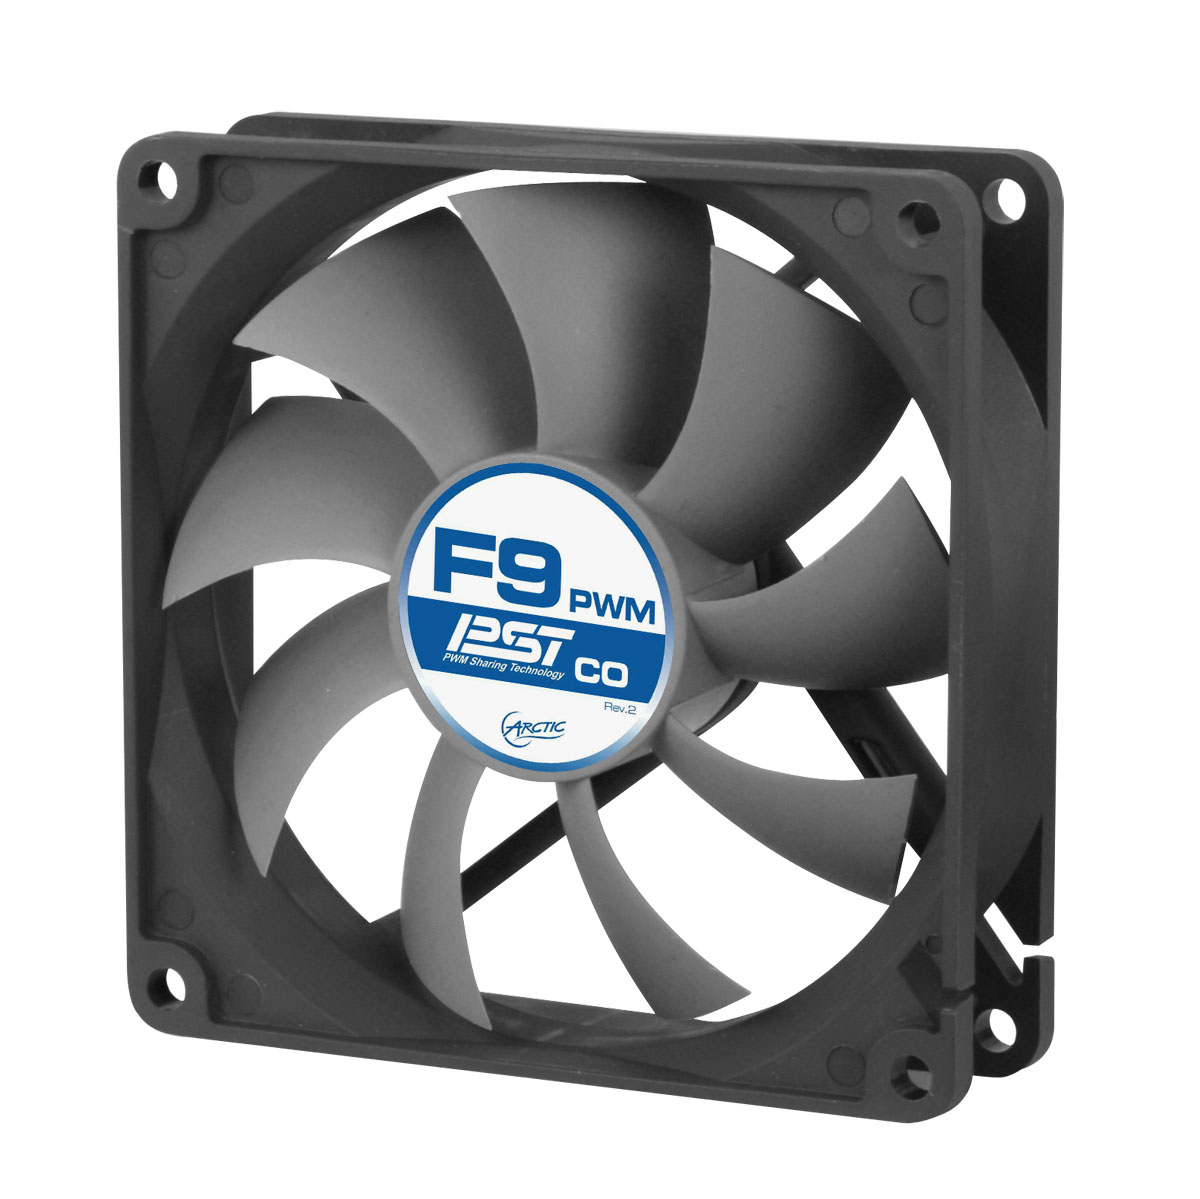 AFACO-090PC-GBA01 ARCTIC F9 PWM PST CO - PWM PST Case Fan for Continuous Operation - Ent01